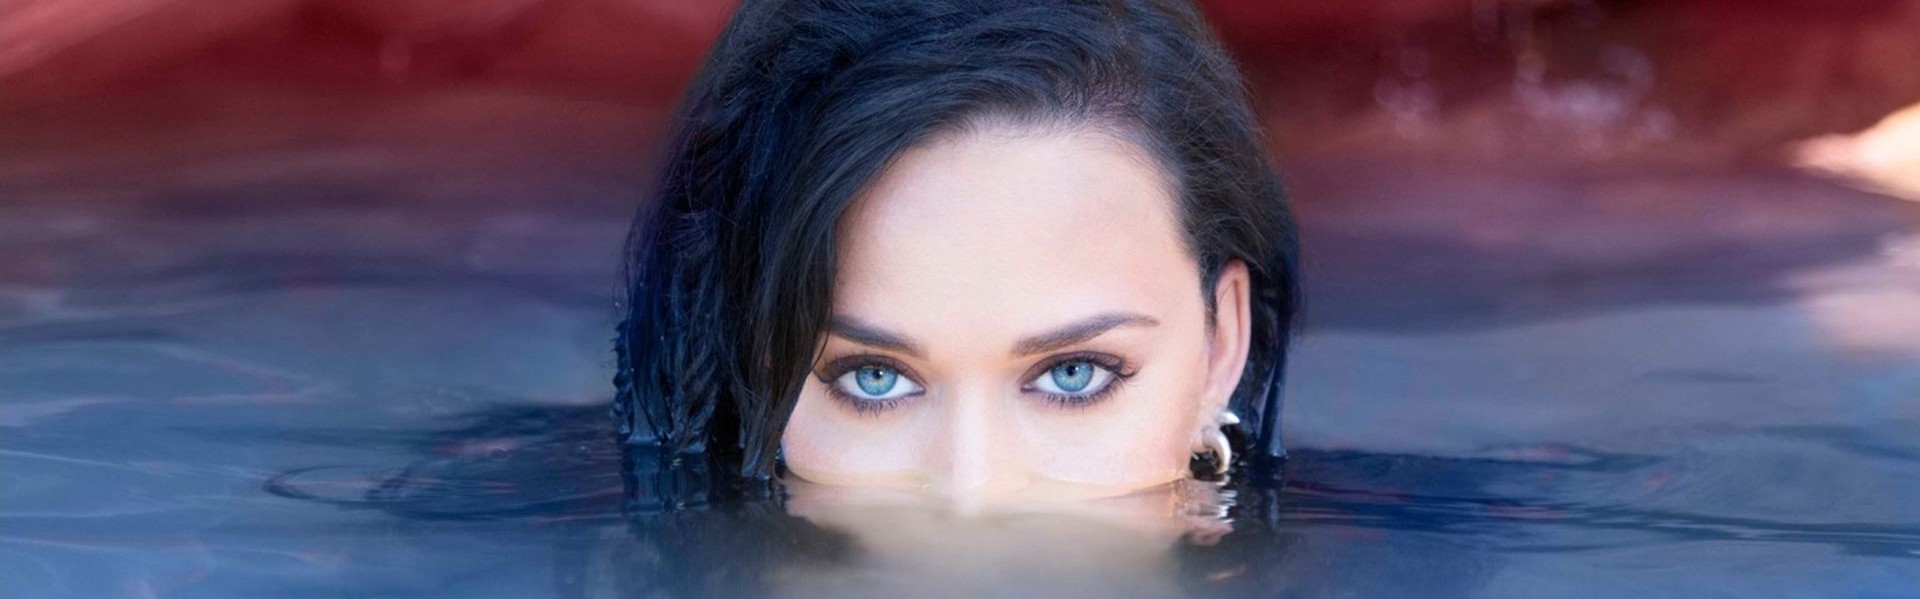 VIDEO: Katy Perry objavila novi video spot za single 'Chained To The Rhythm'